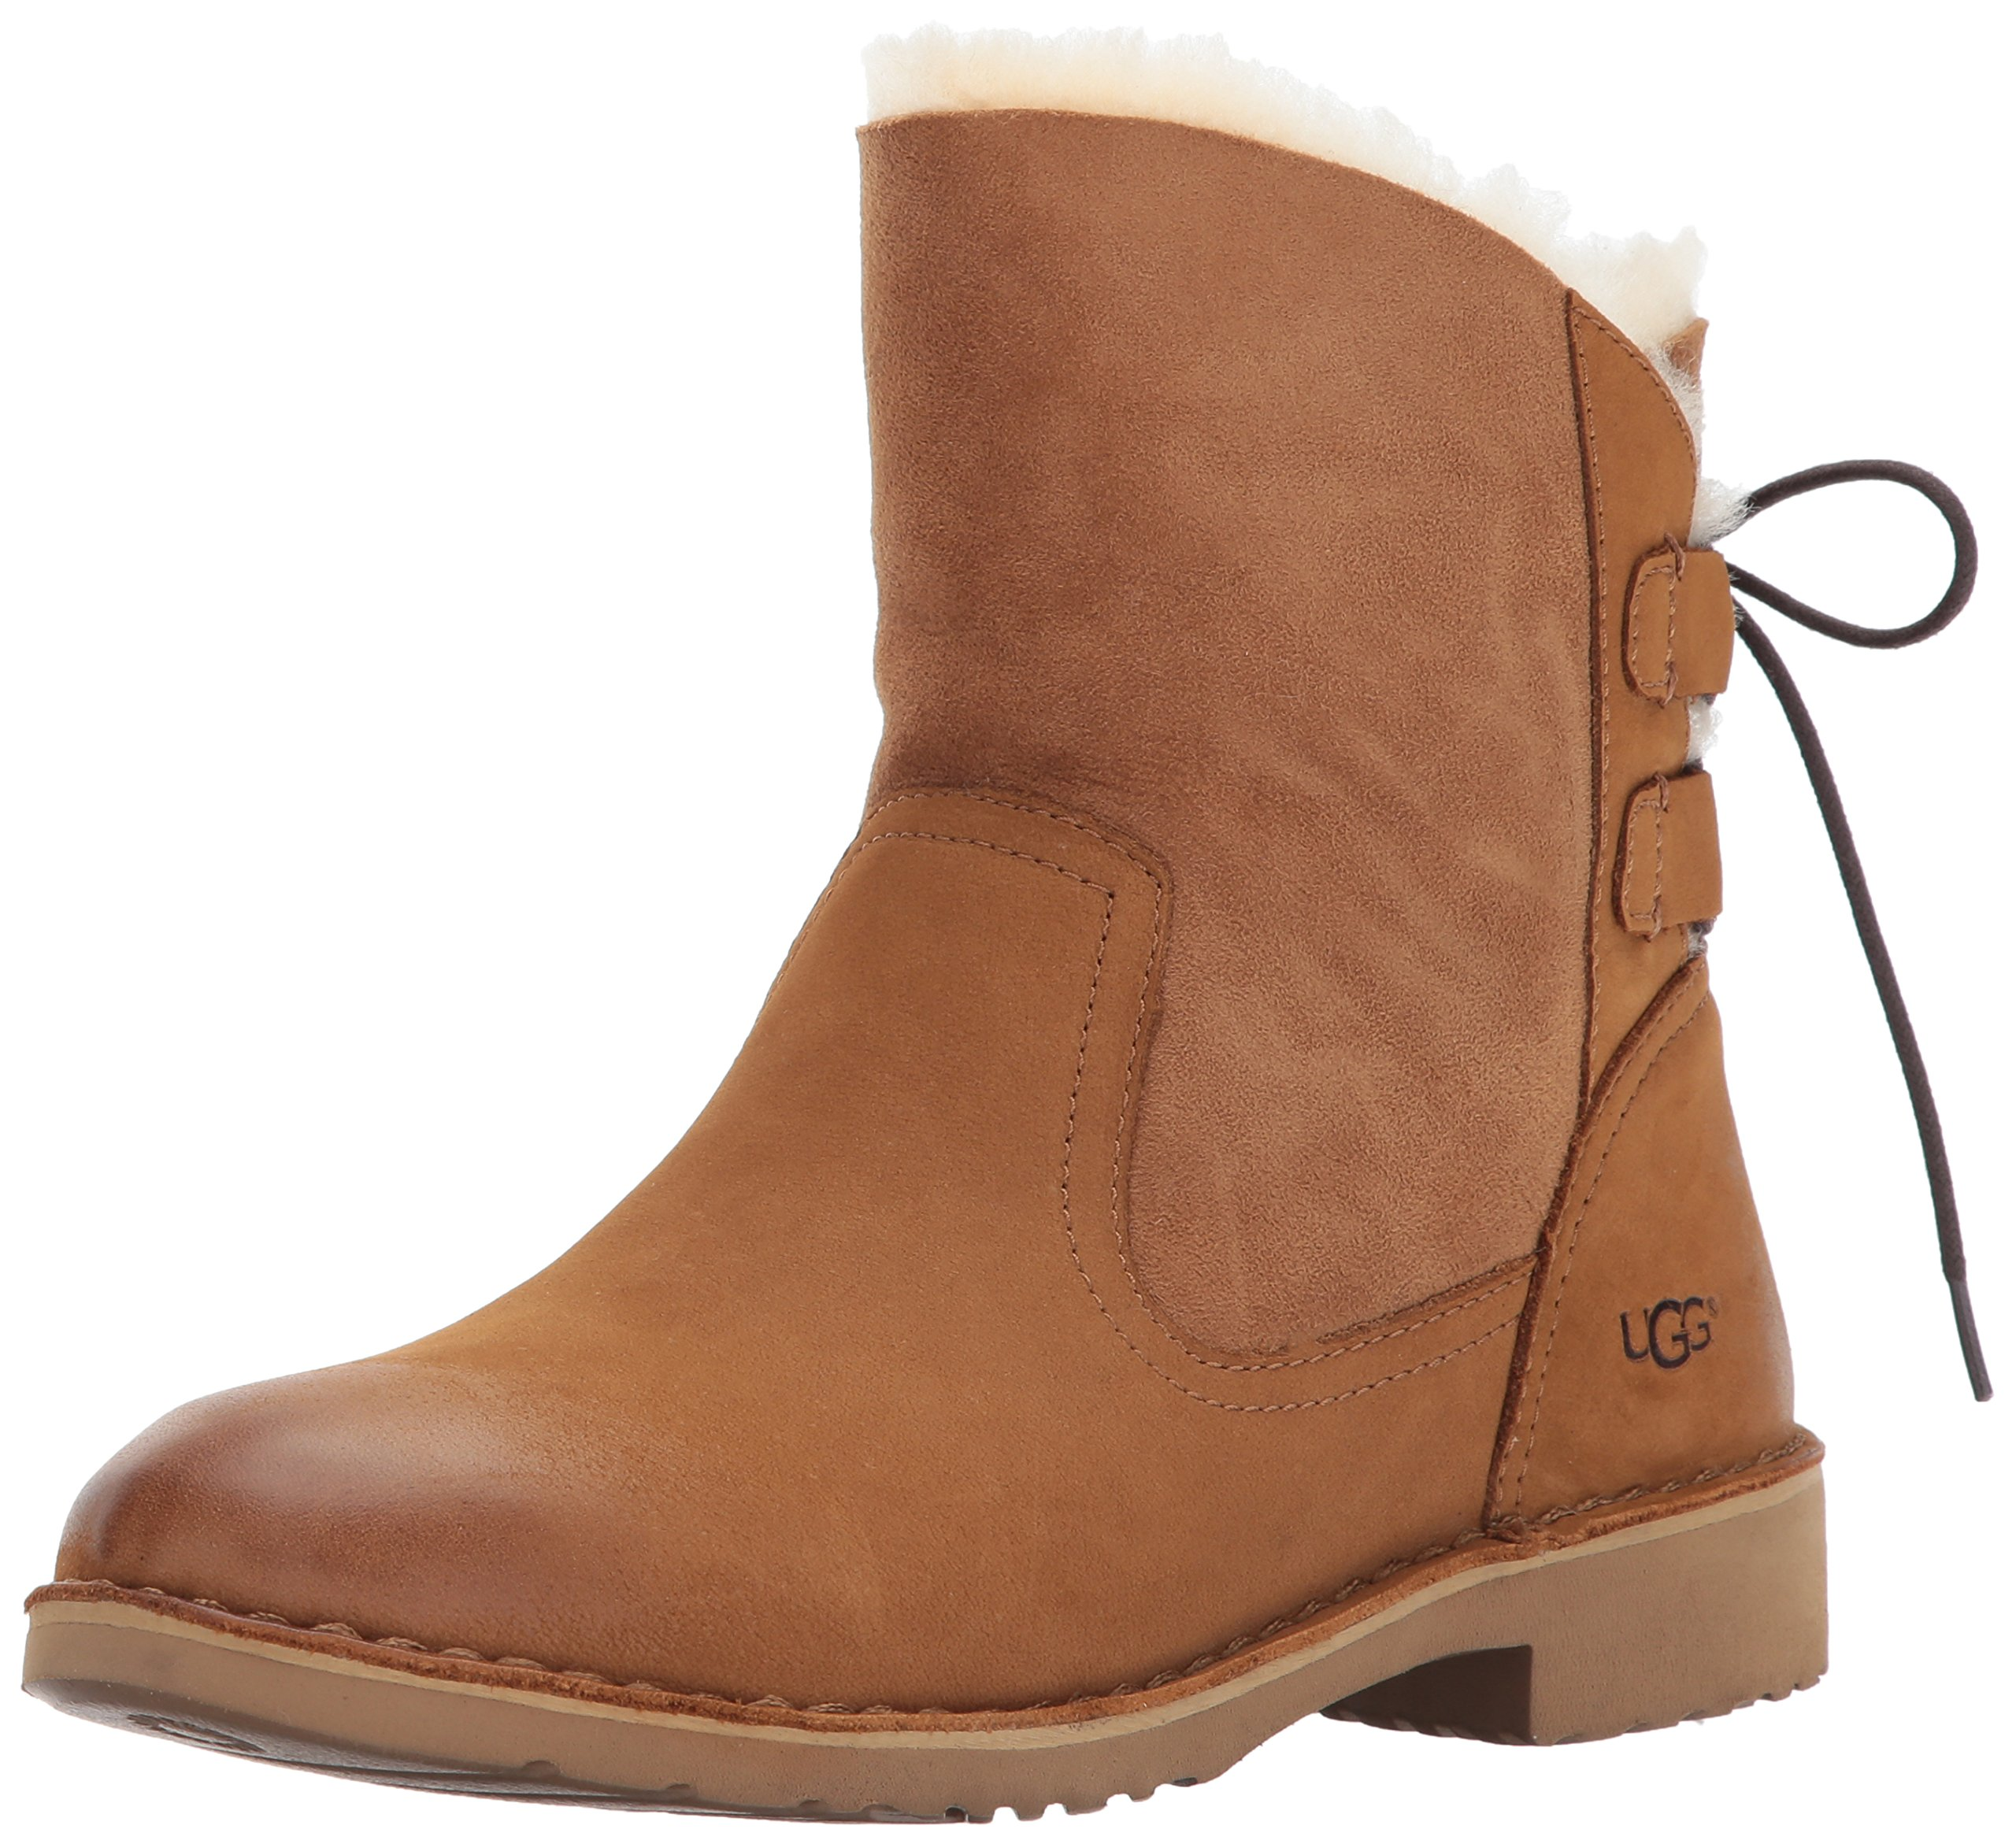 UGG Women's Naiyah Winter Boot, Chestnut, 9 M US